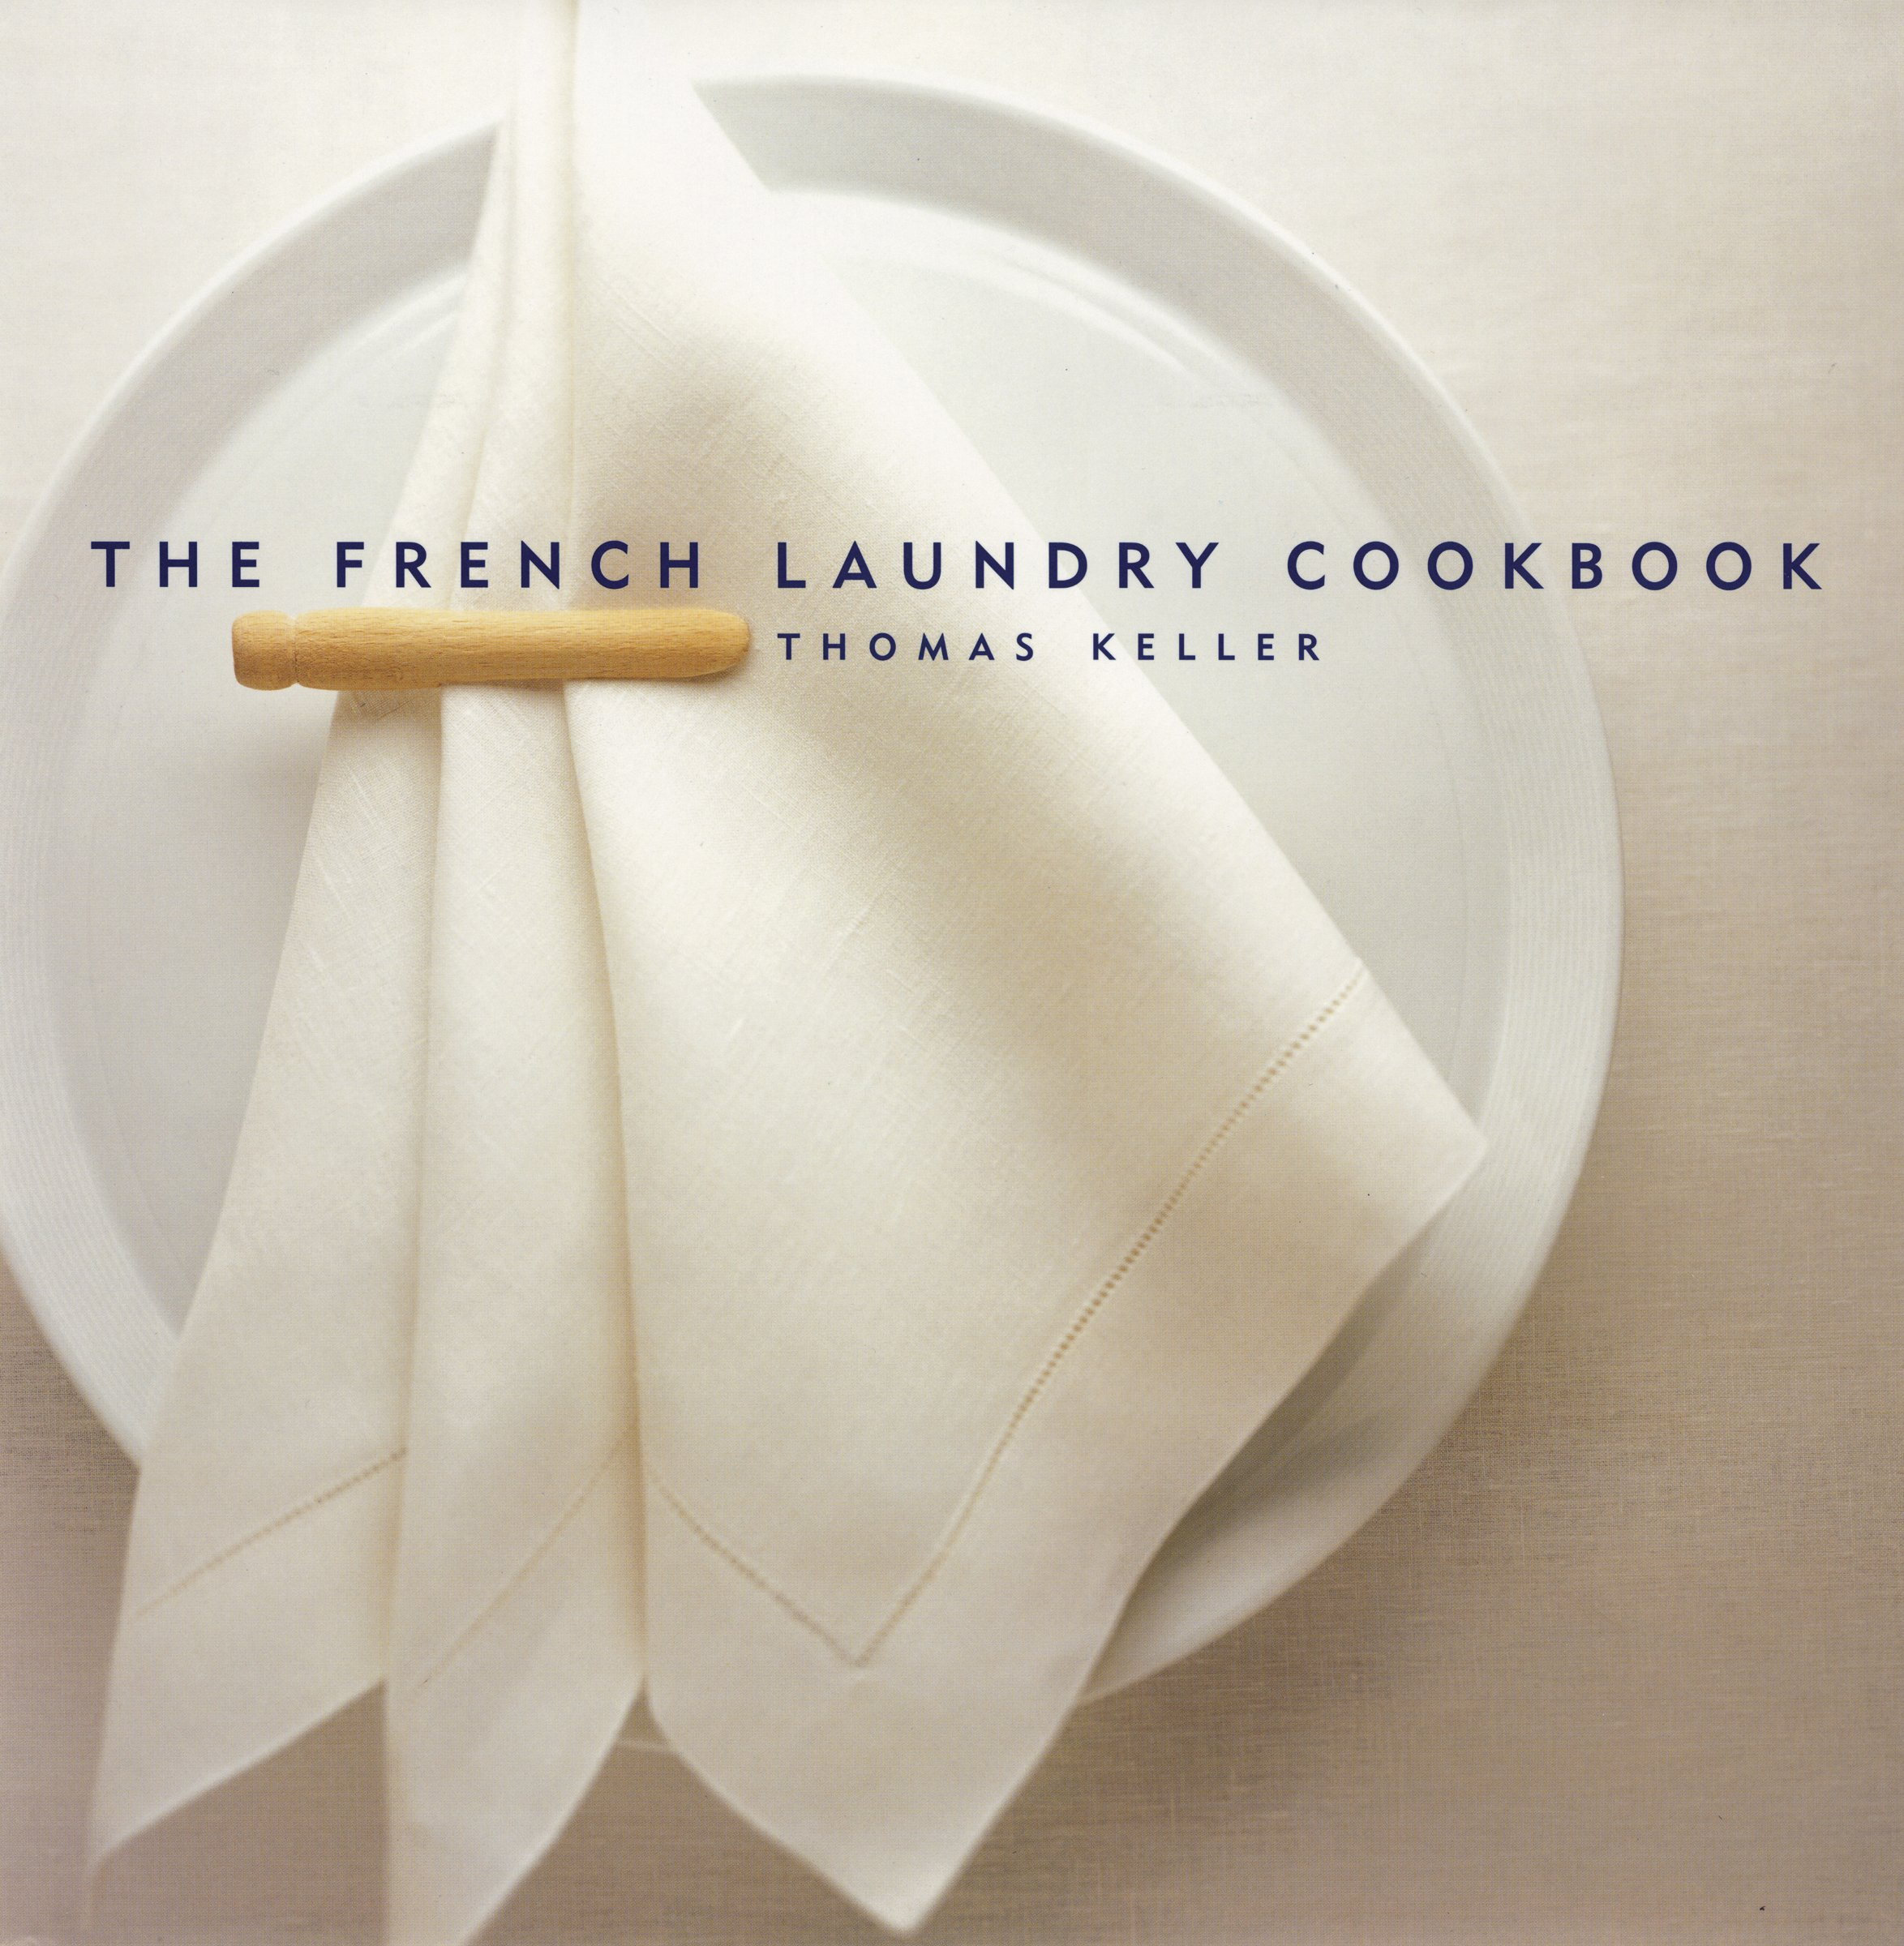 1. Thomas Keller's French Laundry - Working my way through this book was one of the most fun educational experiences I've ever had. And that includes rainy day indoor recesses where I dominated at Connect 4.